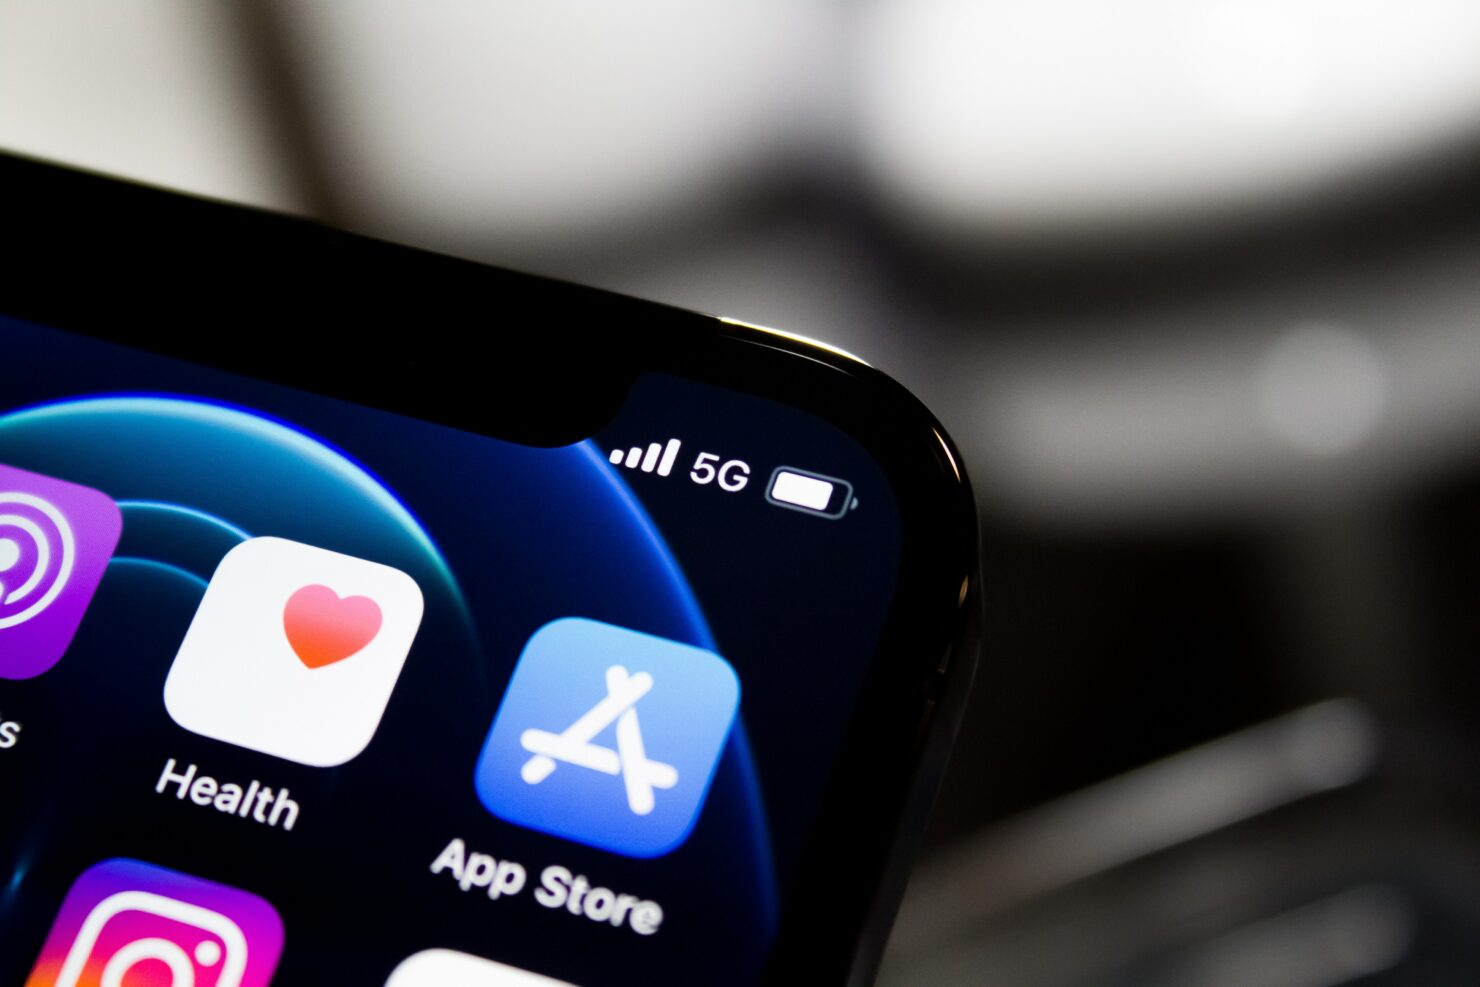 A UK Man is Forced to Sell his Car After His Son Racks Up $1,800 in App Store Purchases